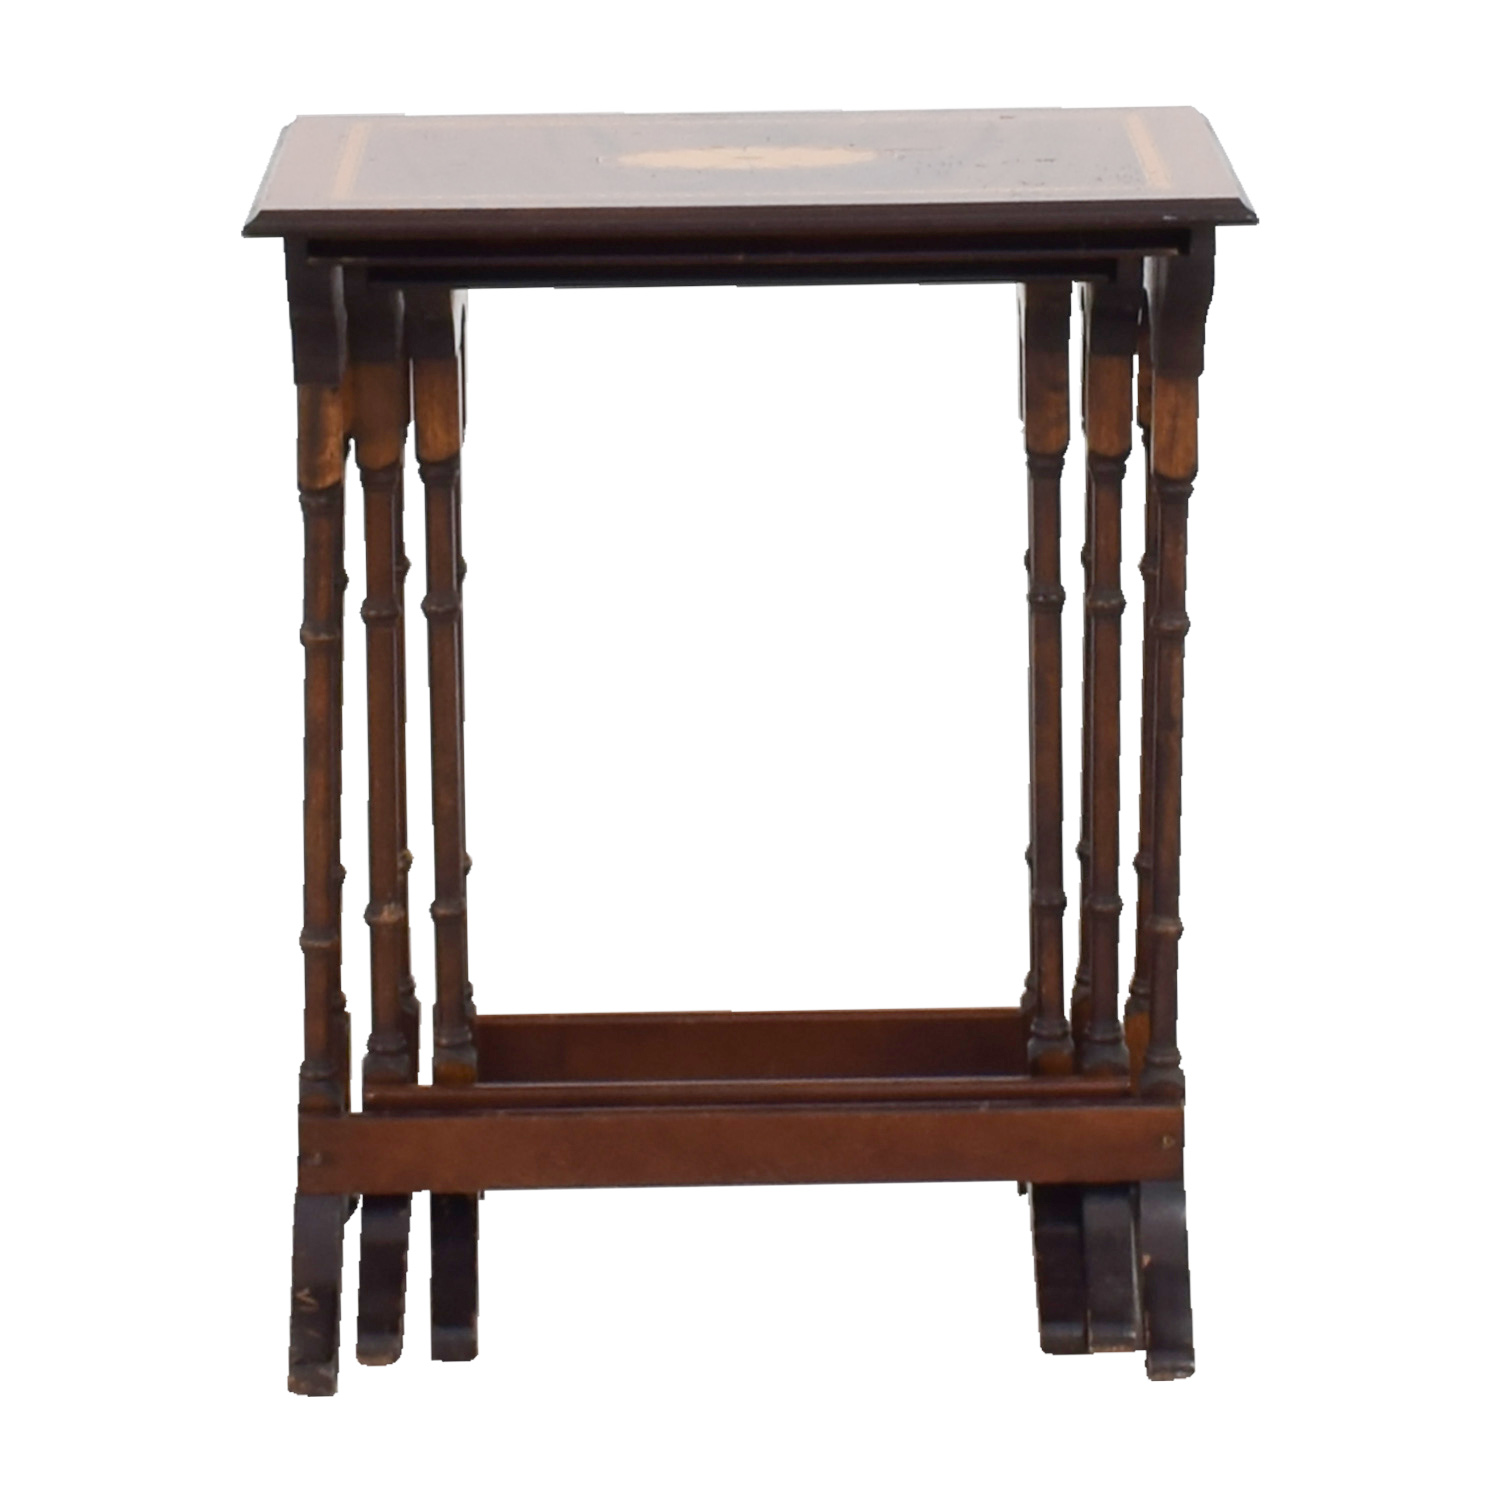 Wood Nesting Tables sale